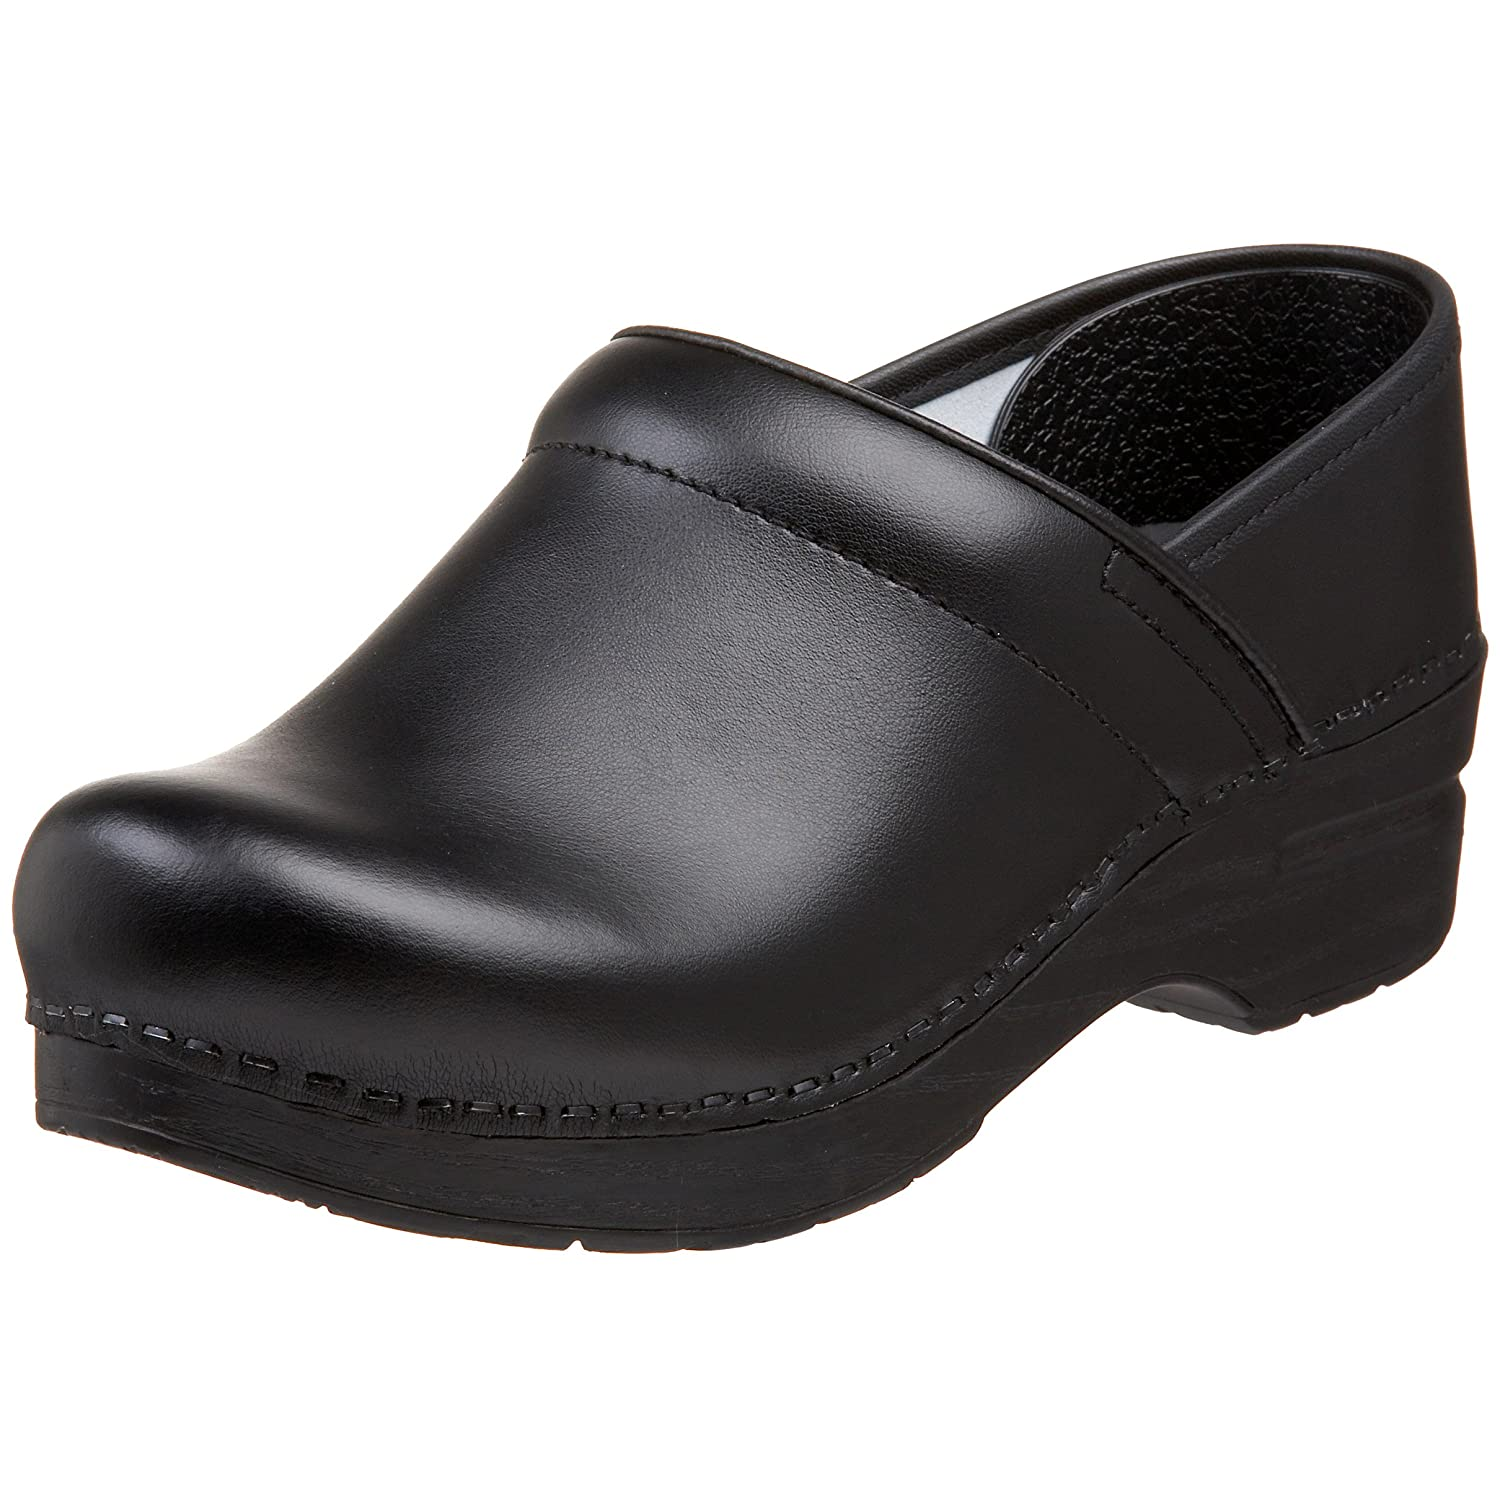 DANSKO Professional Women's Black Leather Clogs